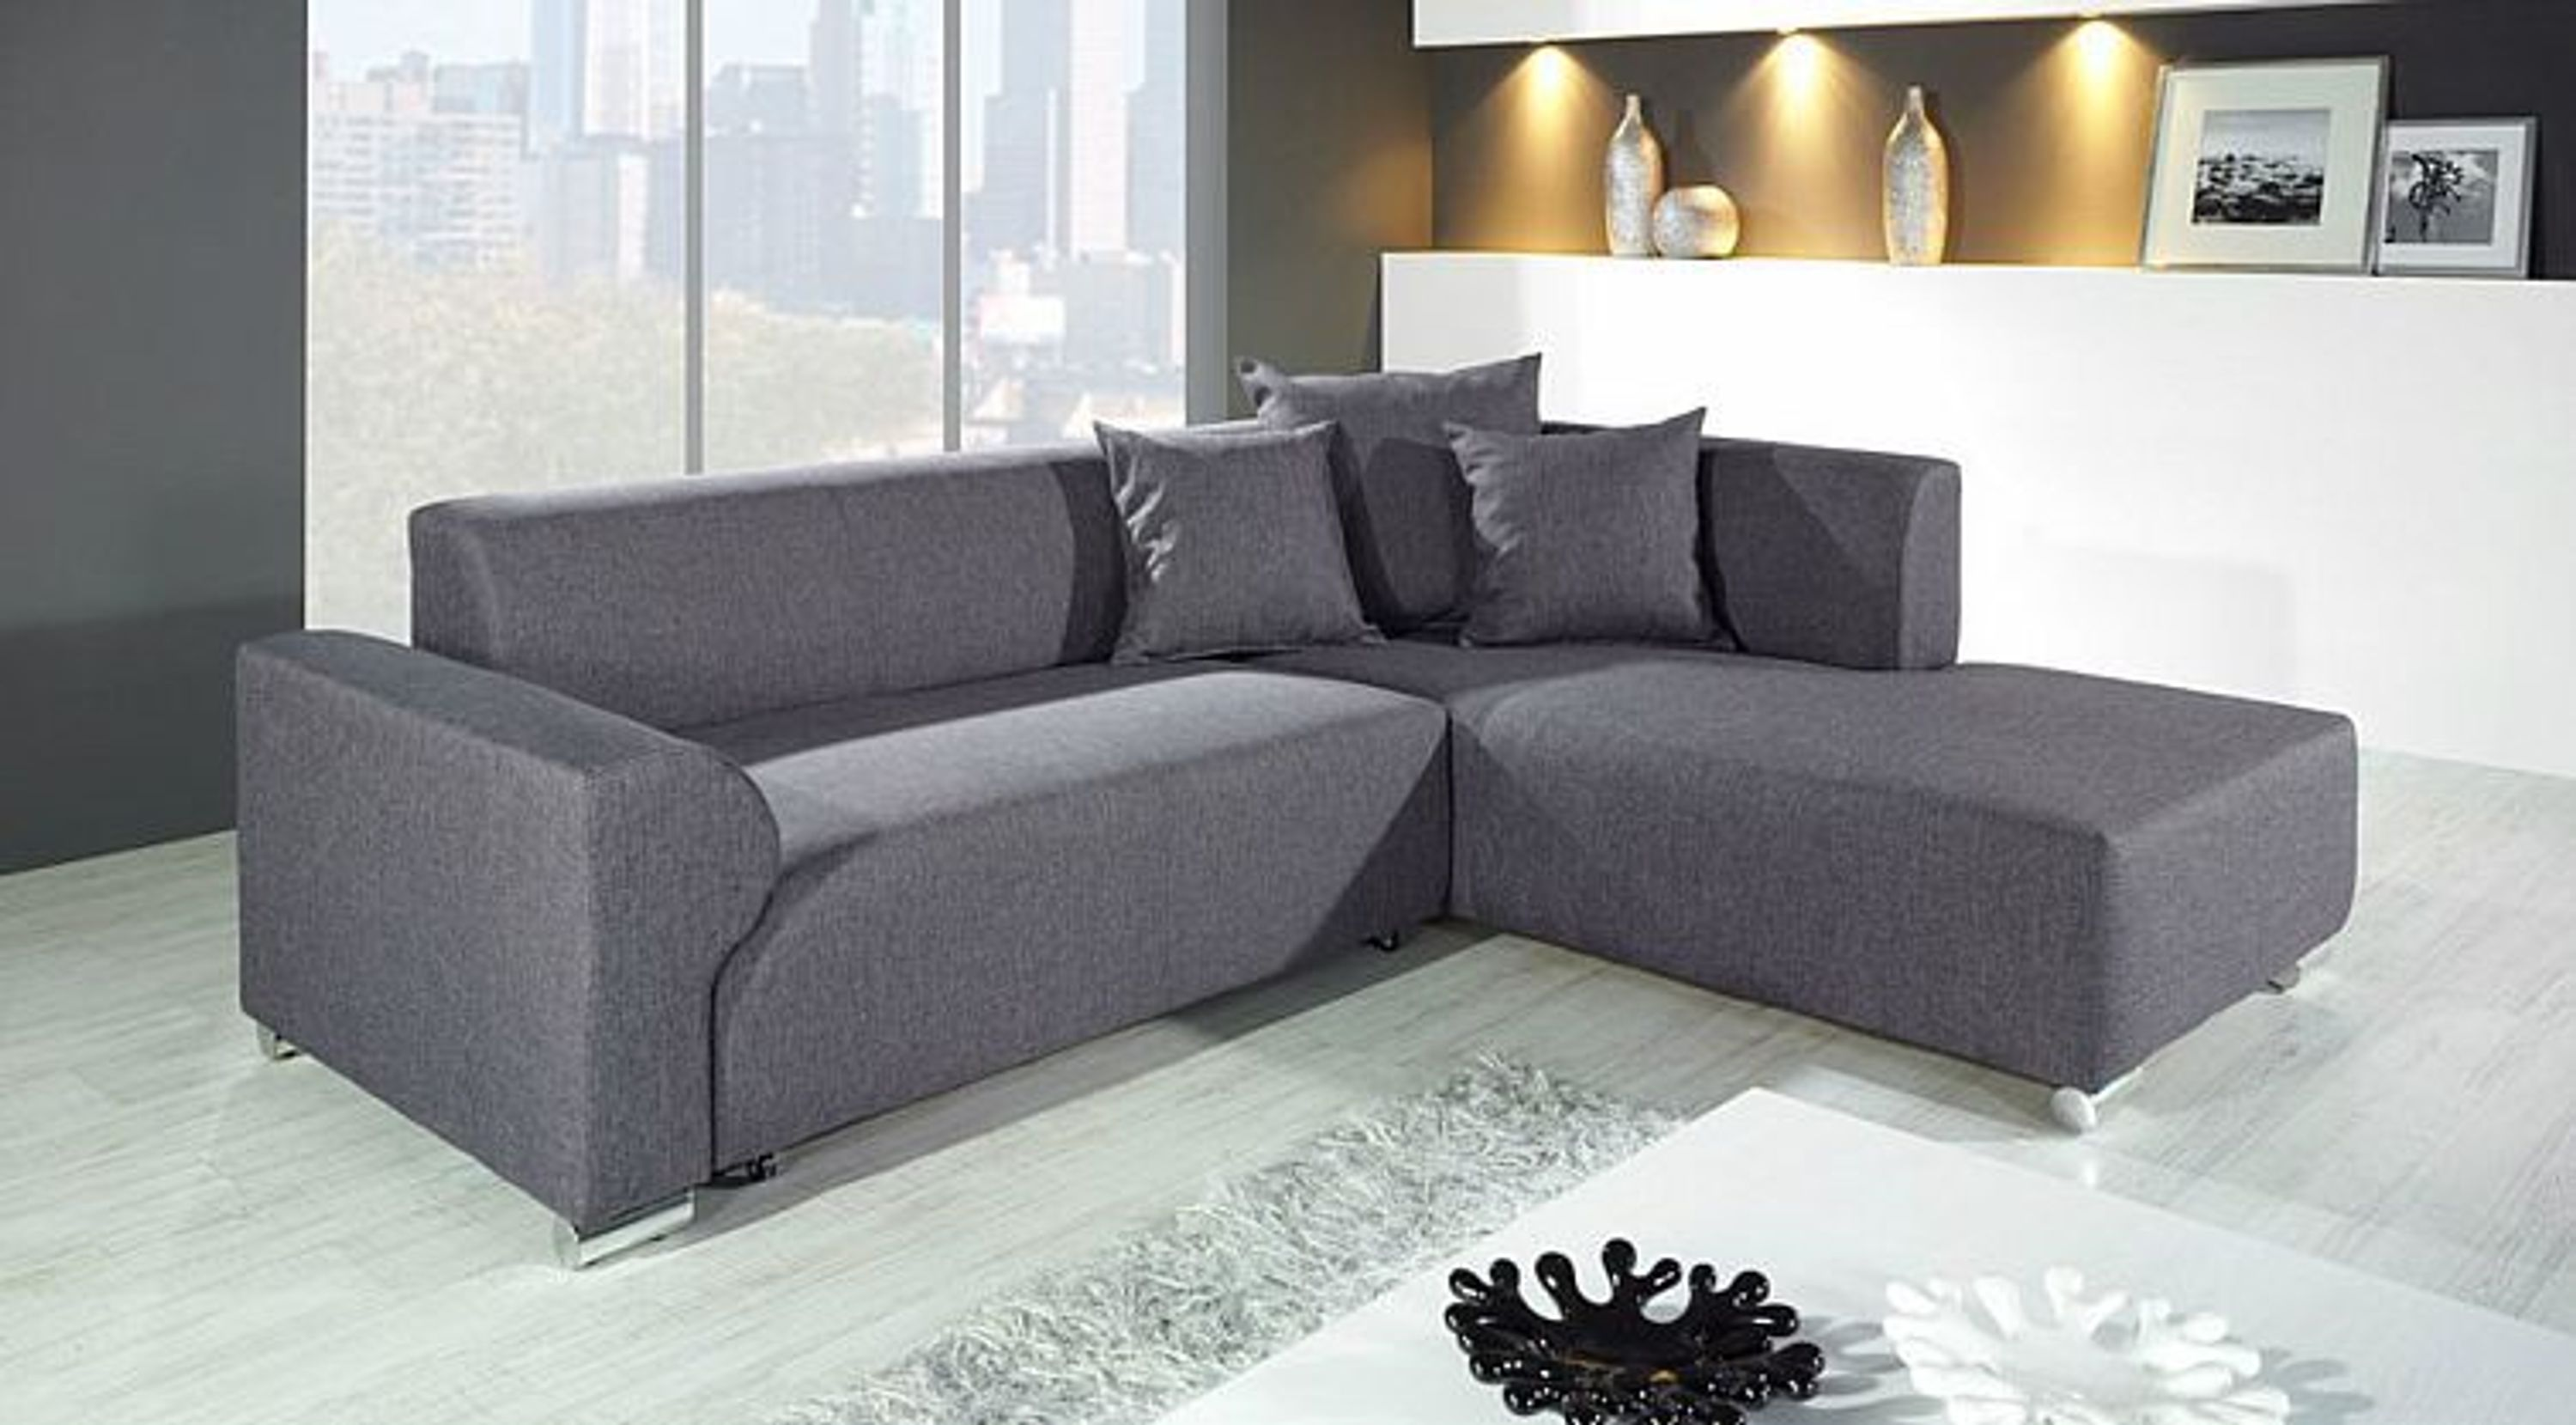 sofa couch m bel schlafsofa schlafcouch eckcouch ecksofa wohnlandschaft g nstig xxl kaufen bei. Black Bedroom Furniture Sets. Home Design Ideas